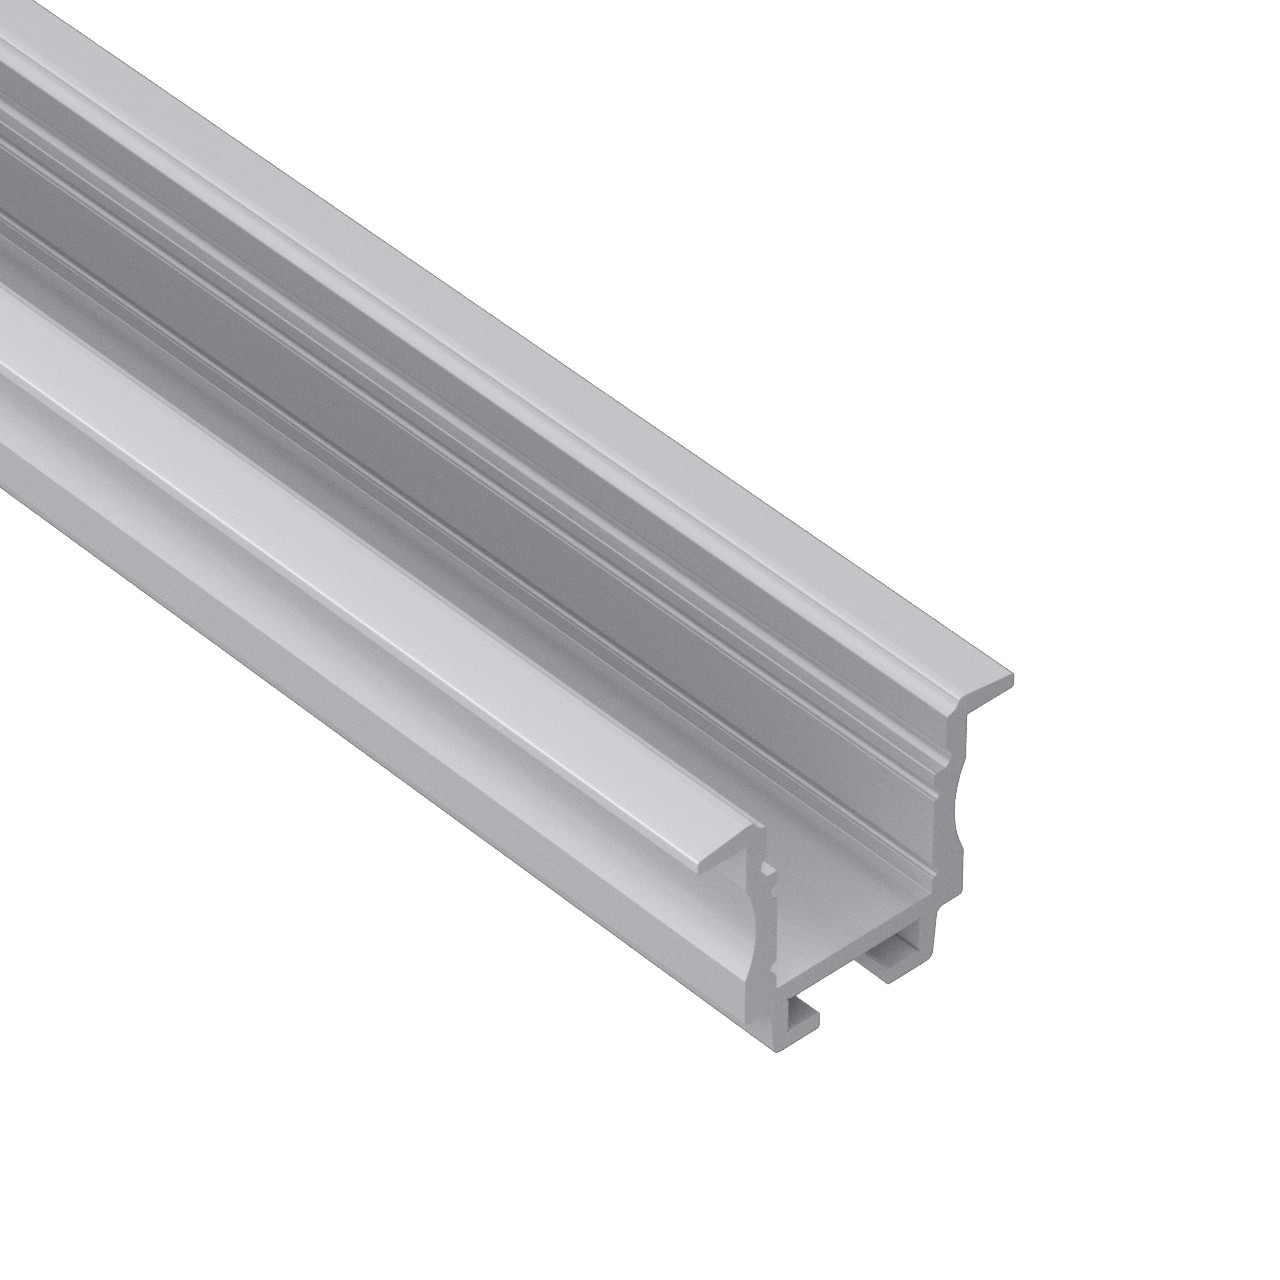 WR2 Wall/ceiling recessed led profile 23x18.6mm